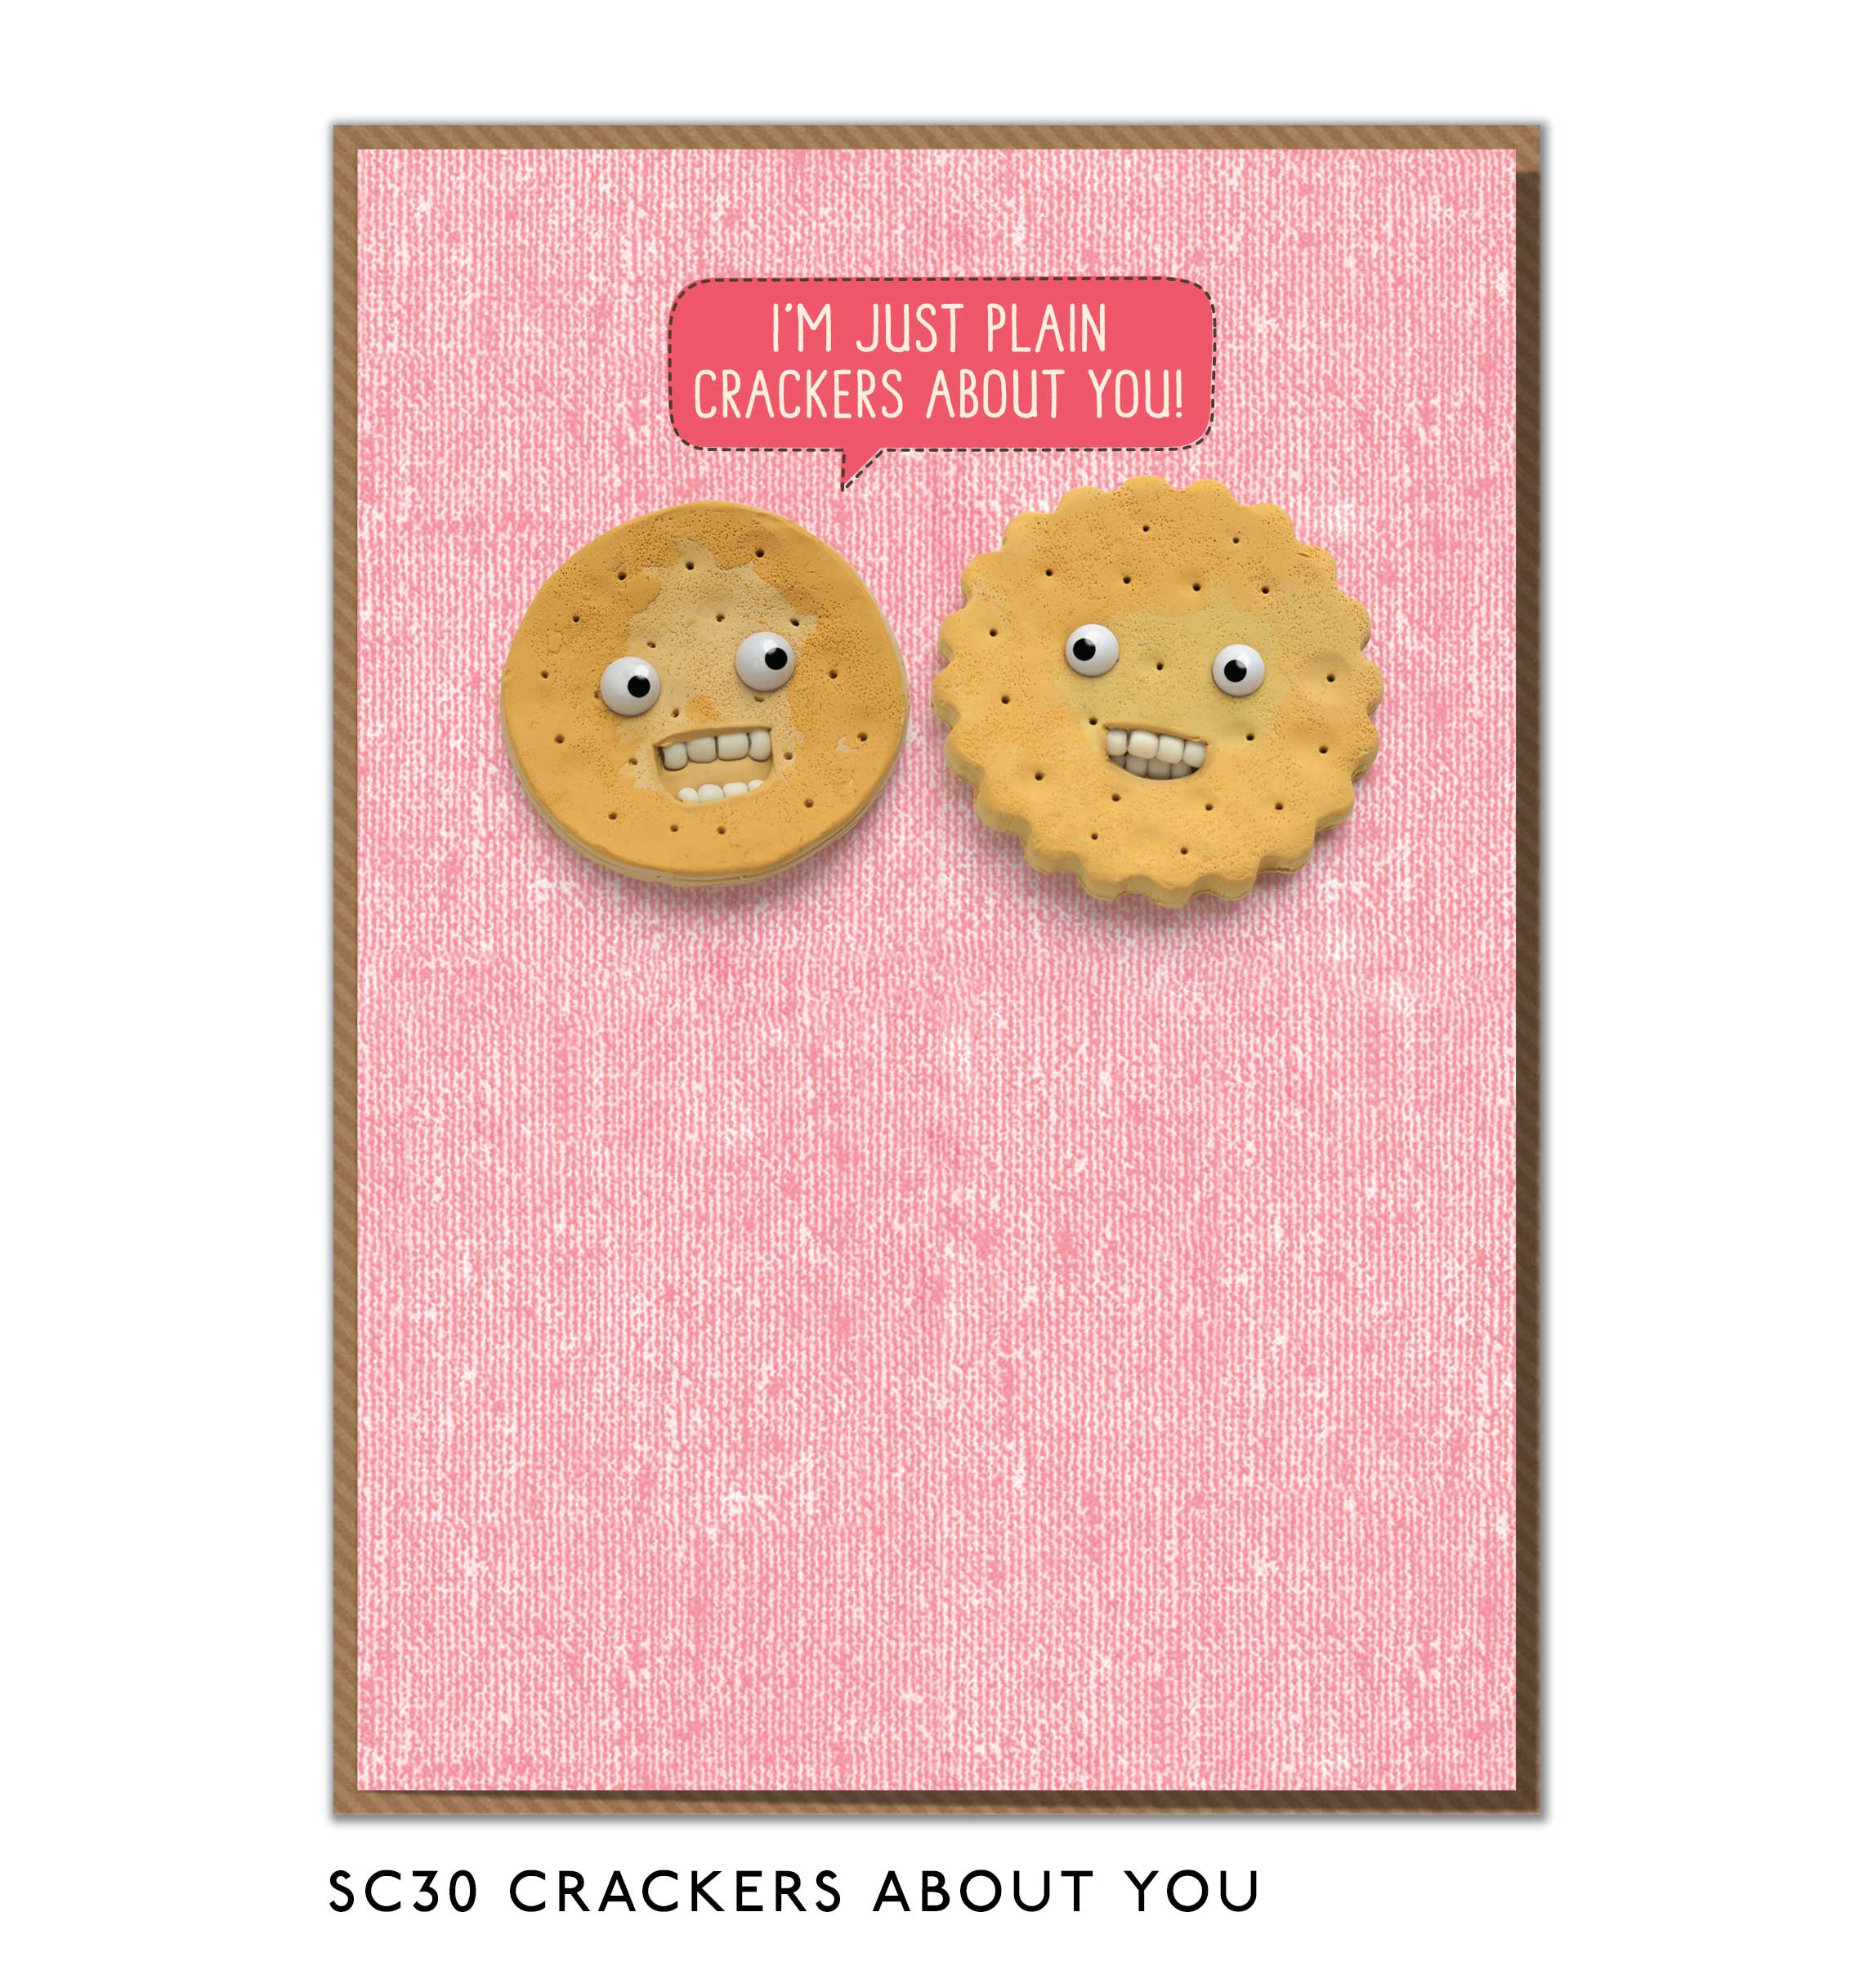 SC30-CRACKERS-ABOUT-YOU.jpg